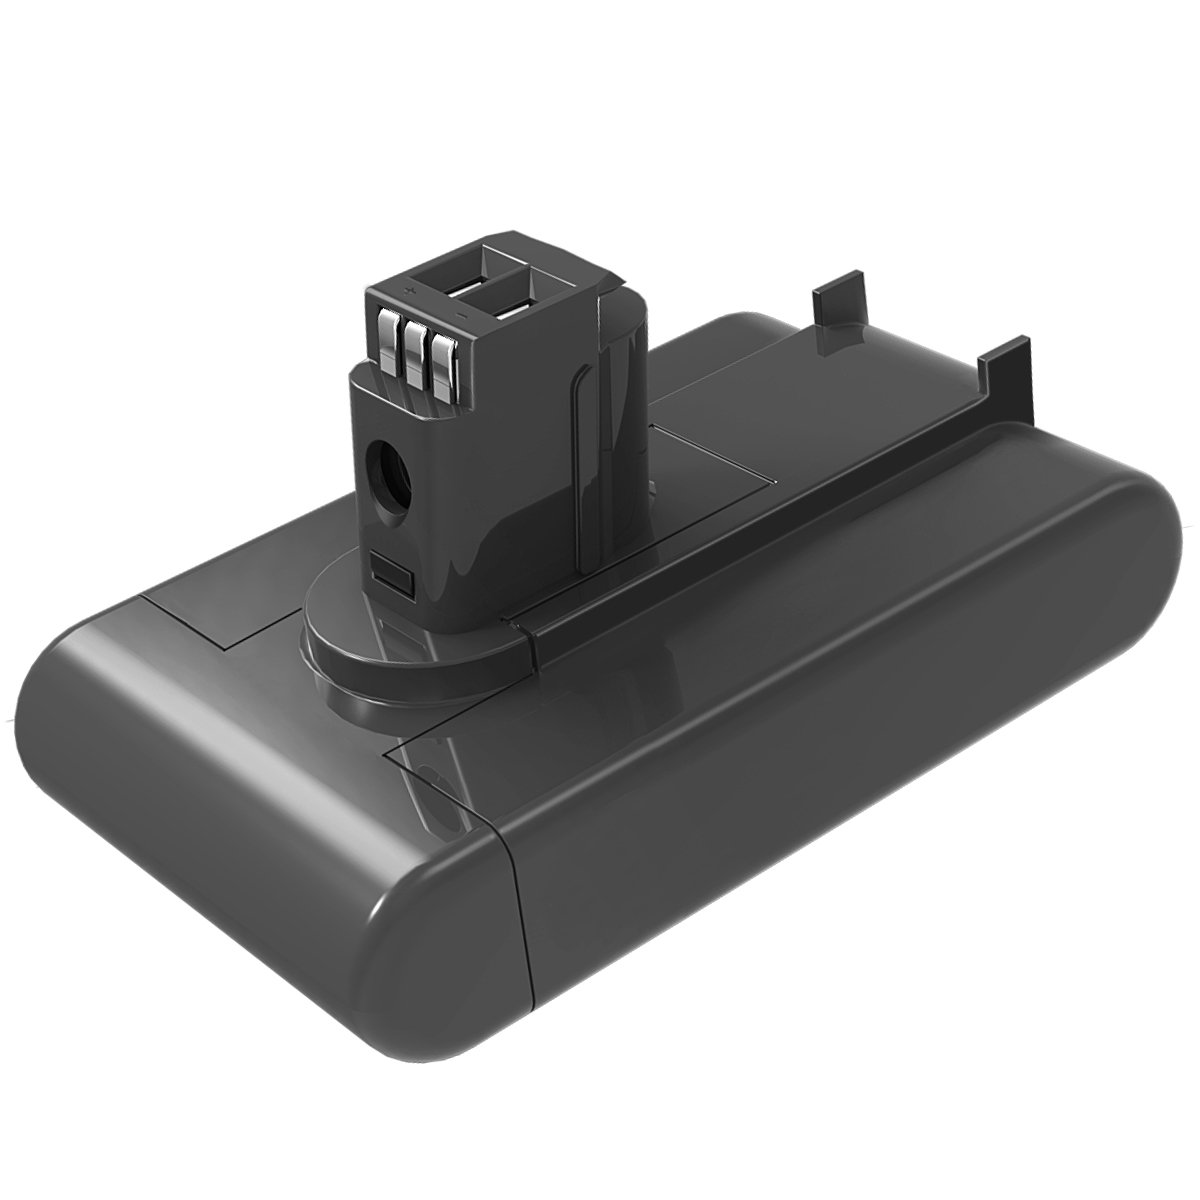 ARyee 3000mAh 22.2V Battery Replacement for Dyson DC31 DC34 DC35 DC44(Type A,Not fit Dyson Type B), fits 917083-01 17083-2811 18172-01-04 17083-4211